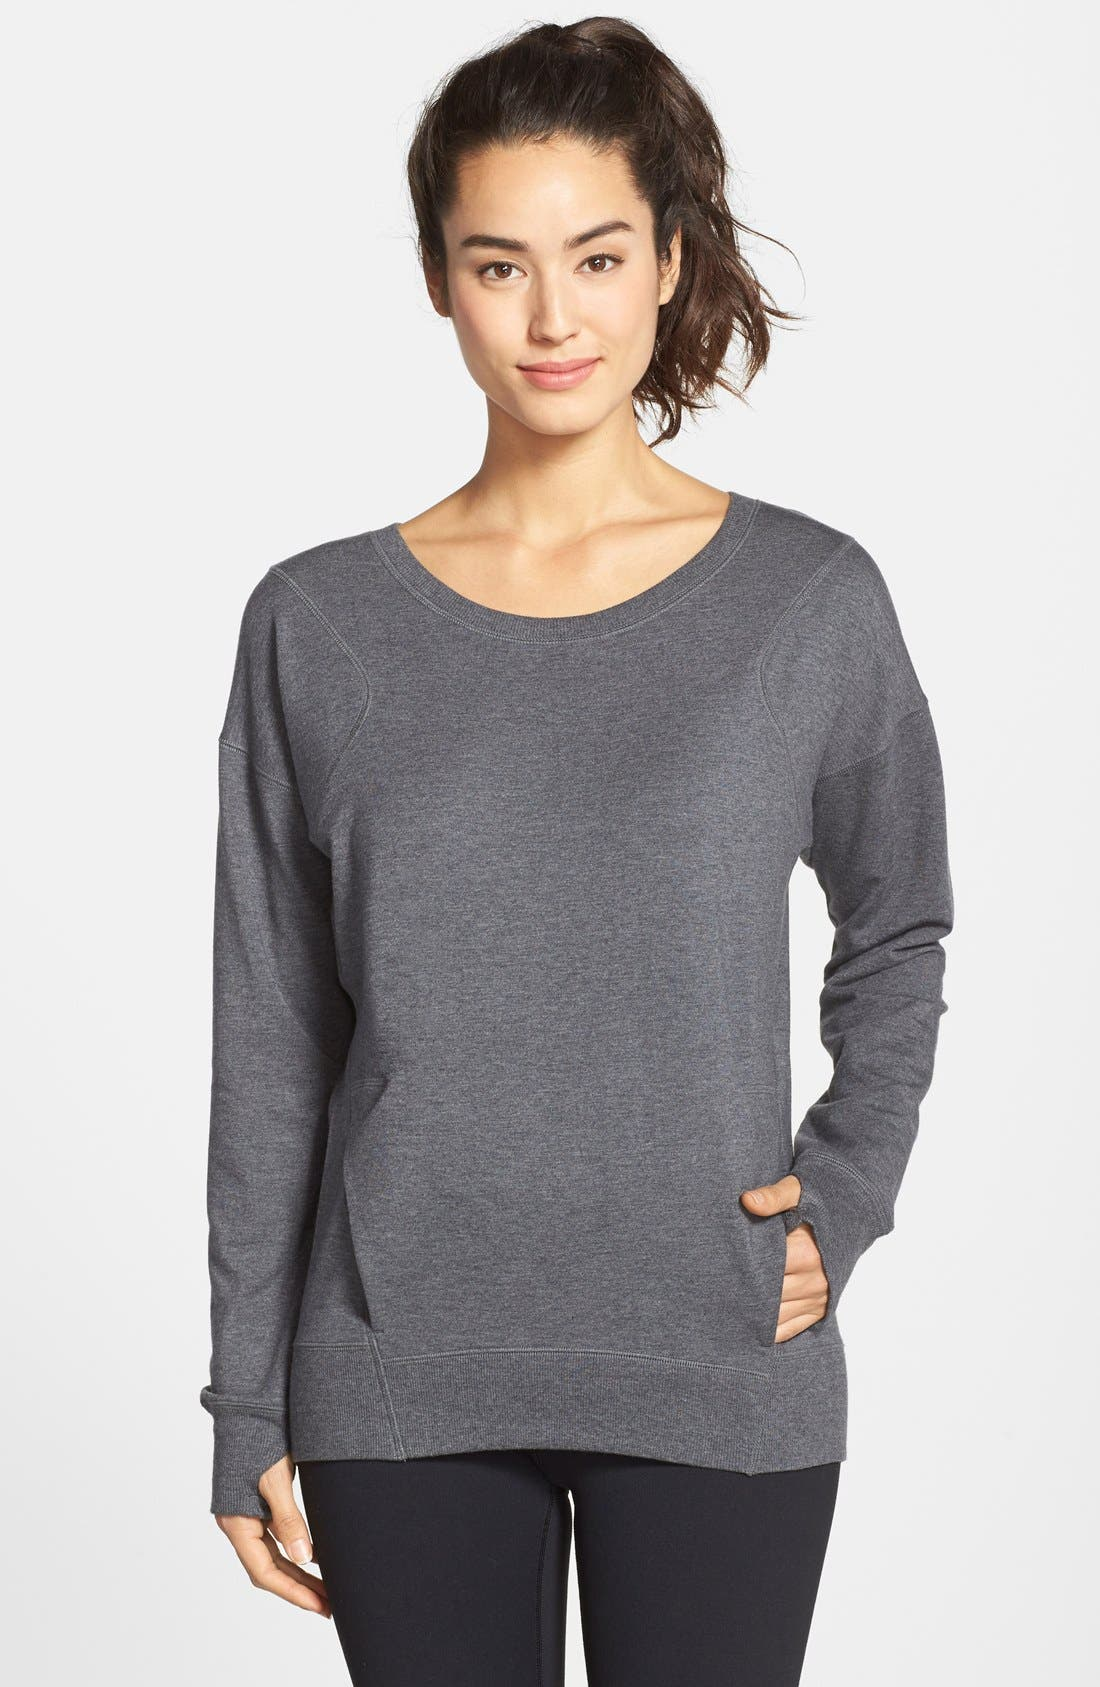 Main Image - Zella 'Amore' Pullover